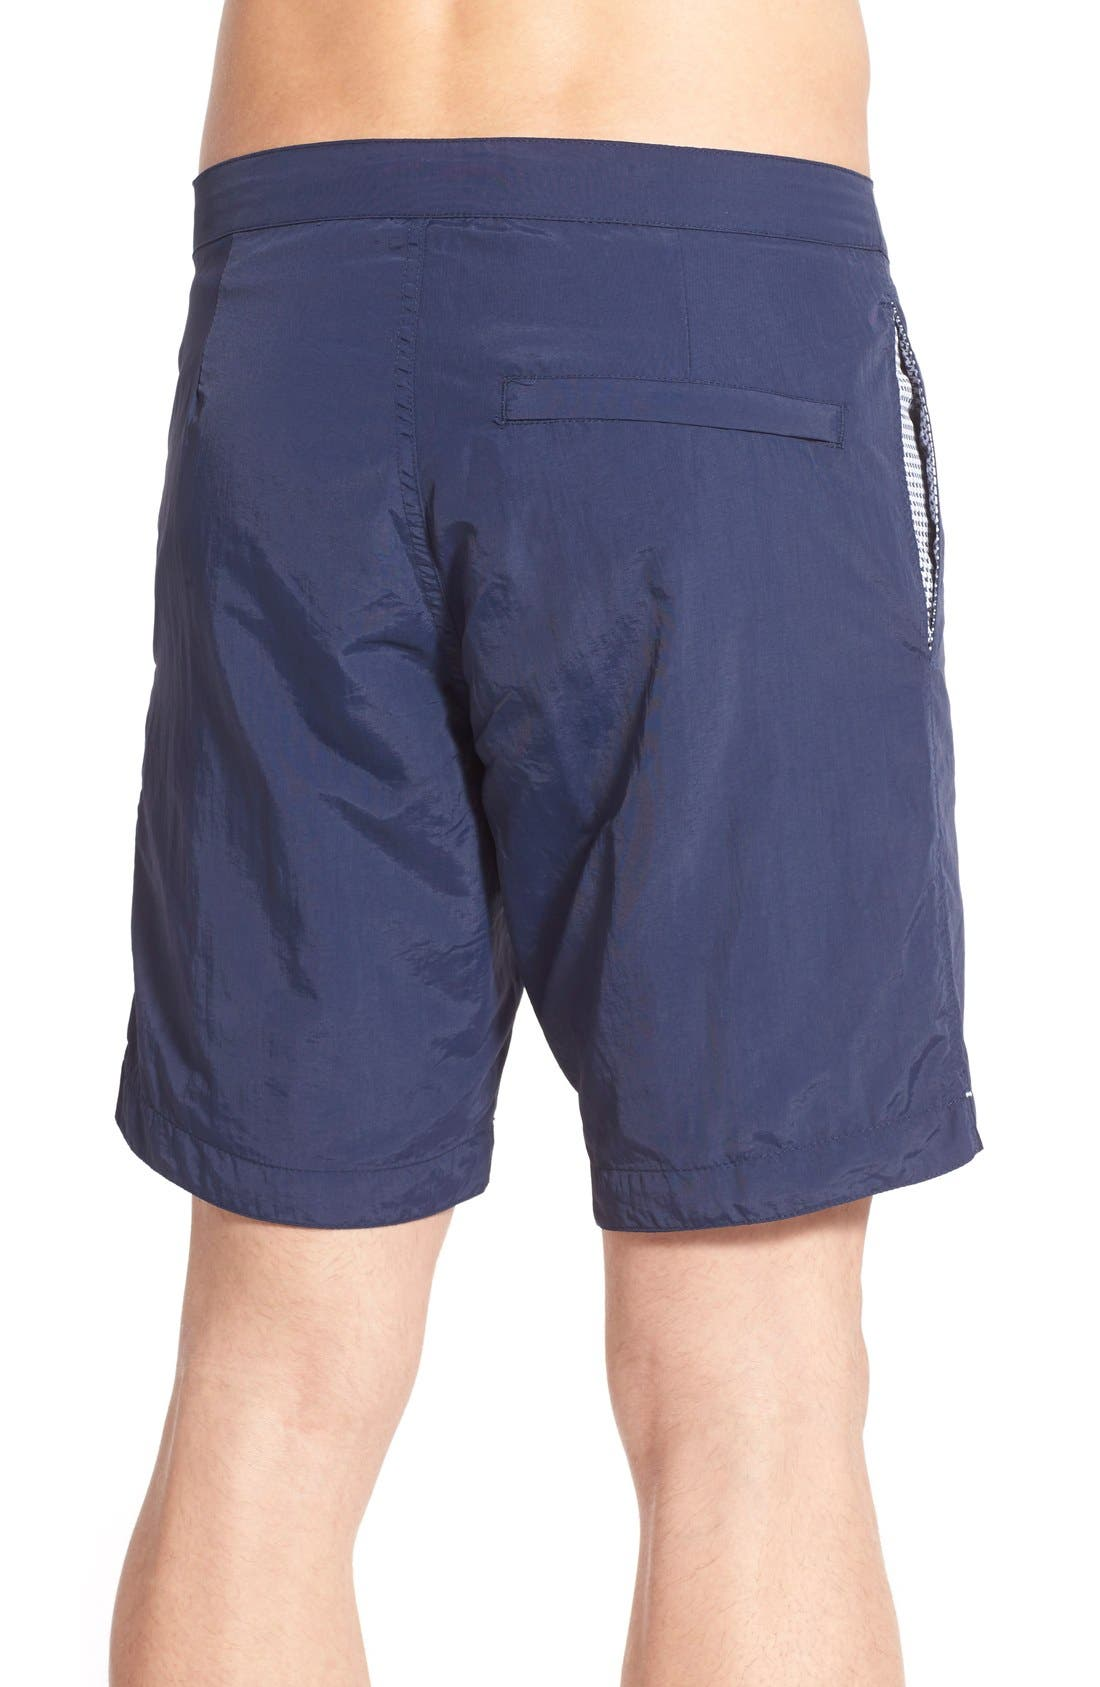 Aruba Tailored Fit 8.5 Inch Swim Trunks,                             Alternate thumbnail 2, color,                             Deep Navy Blue